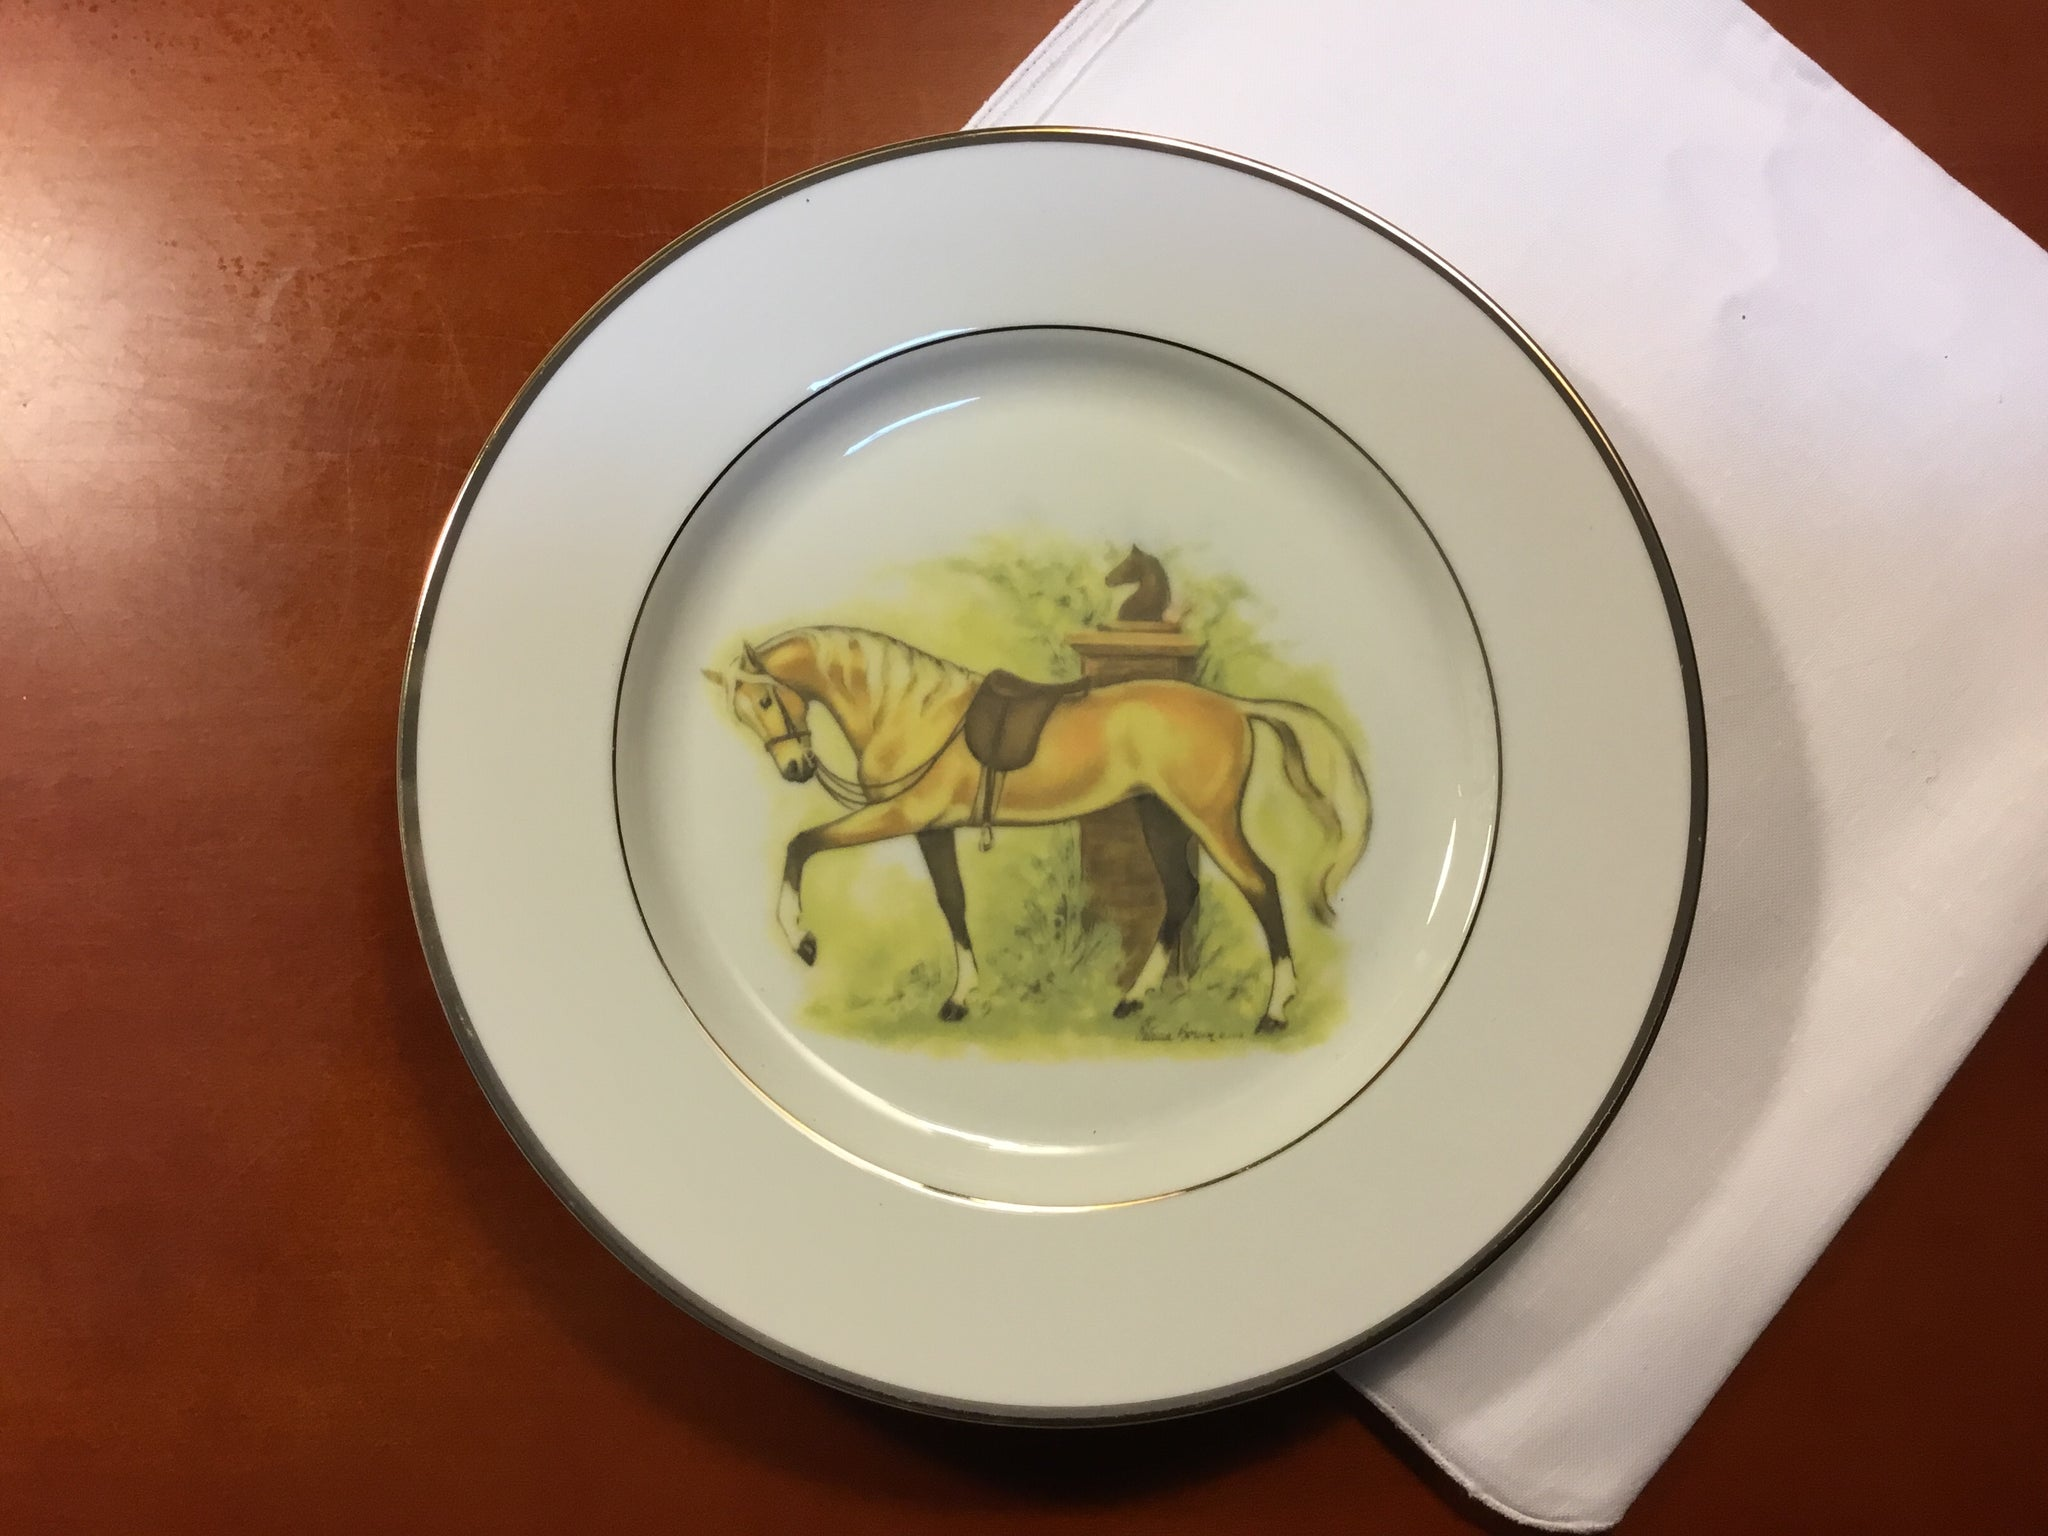 Palomino salad plates set of 4, 7.5 inch by Patricia Borum